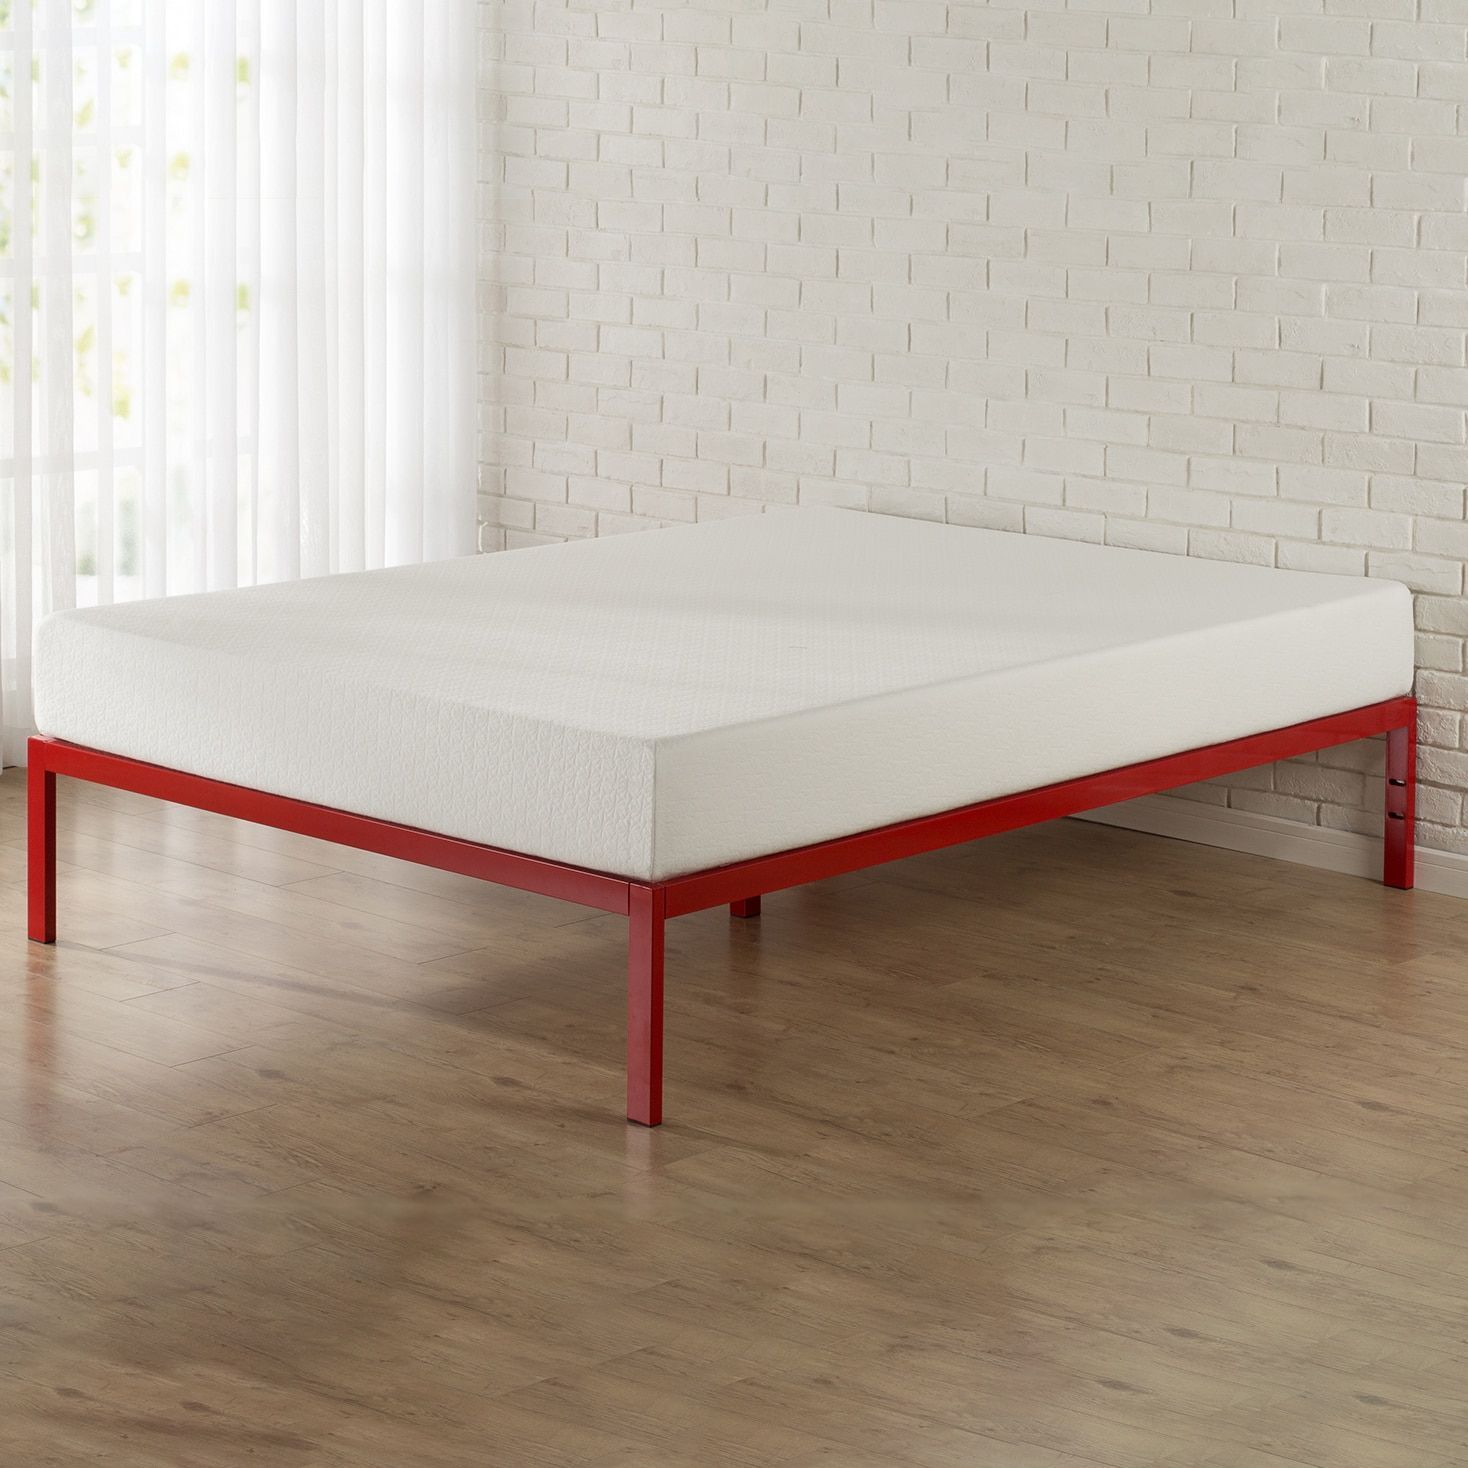 Priage 1500 Red Platform Bed Frame (Full) | Platform bed frame, Bed ...